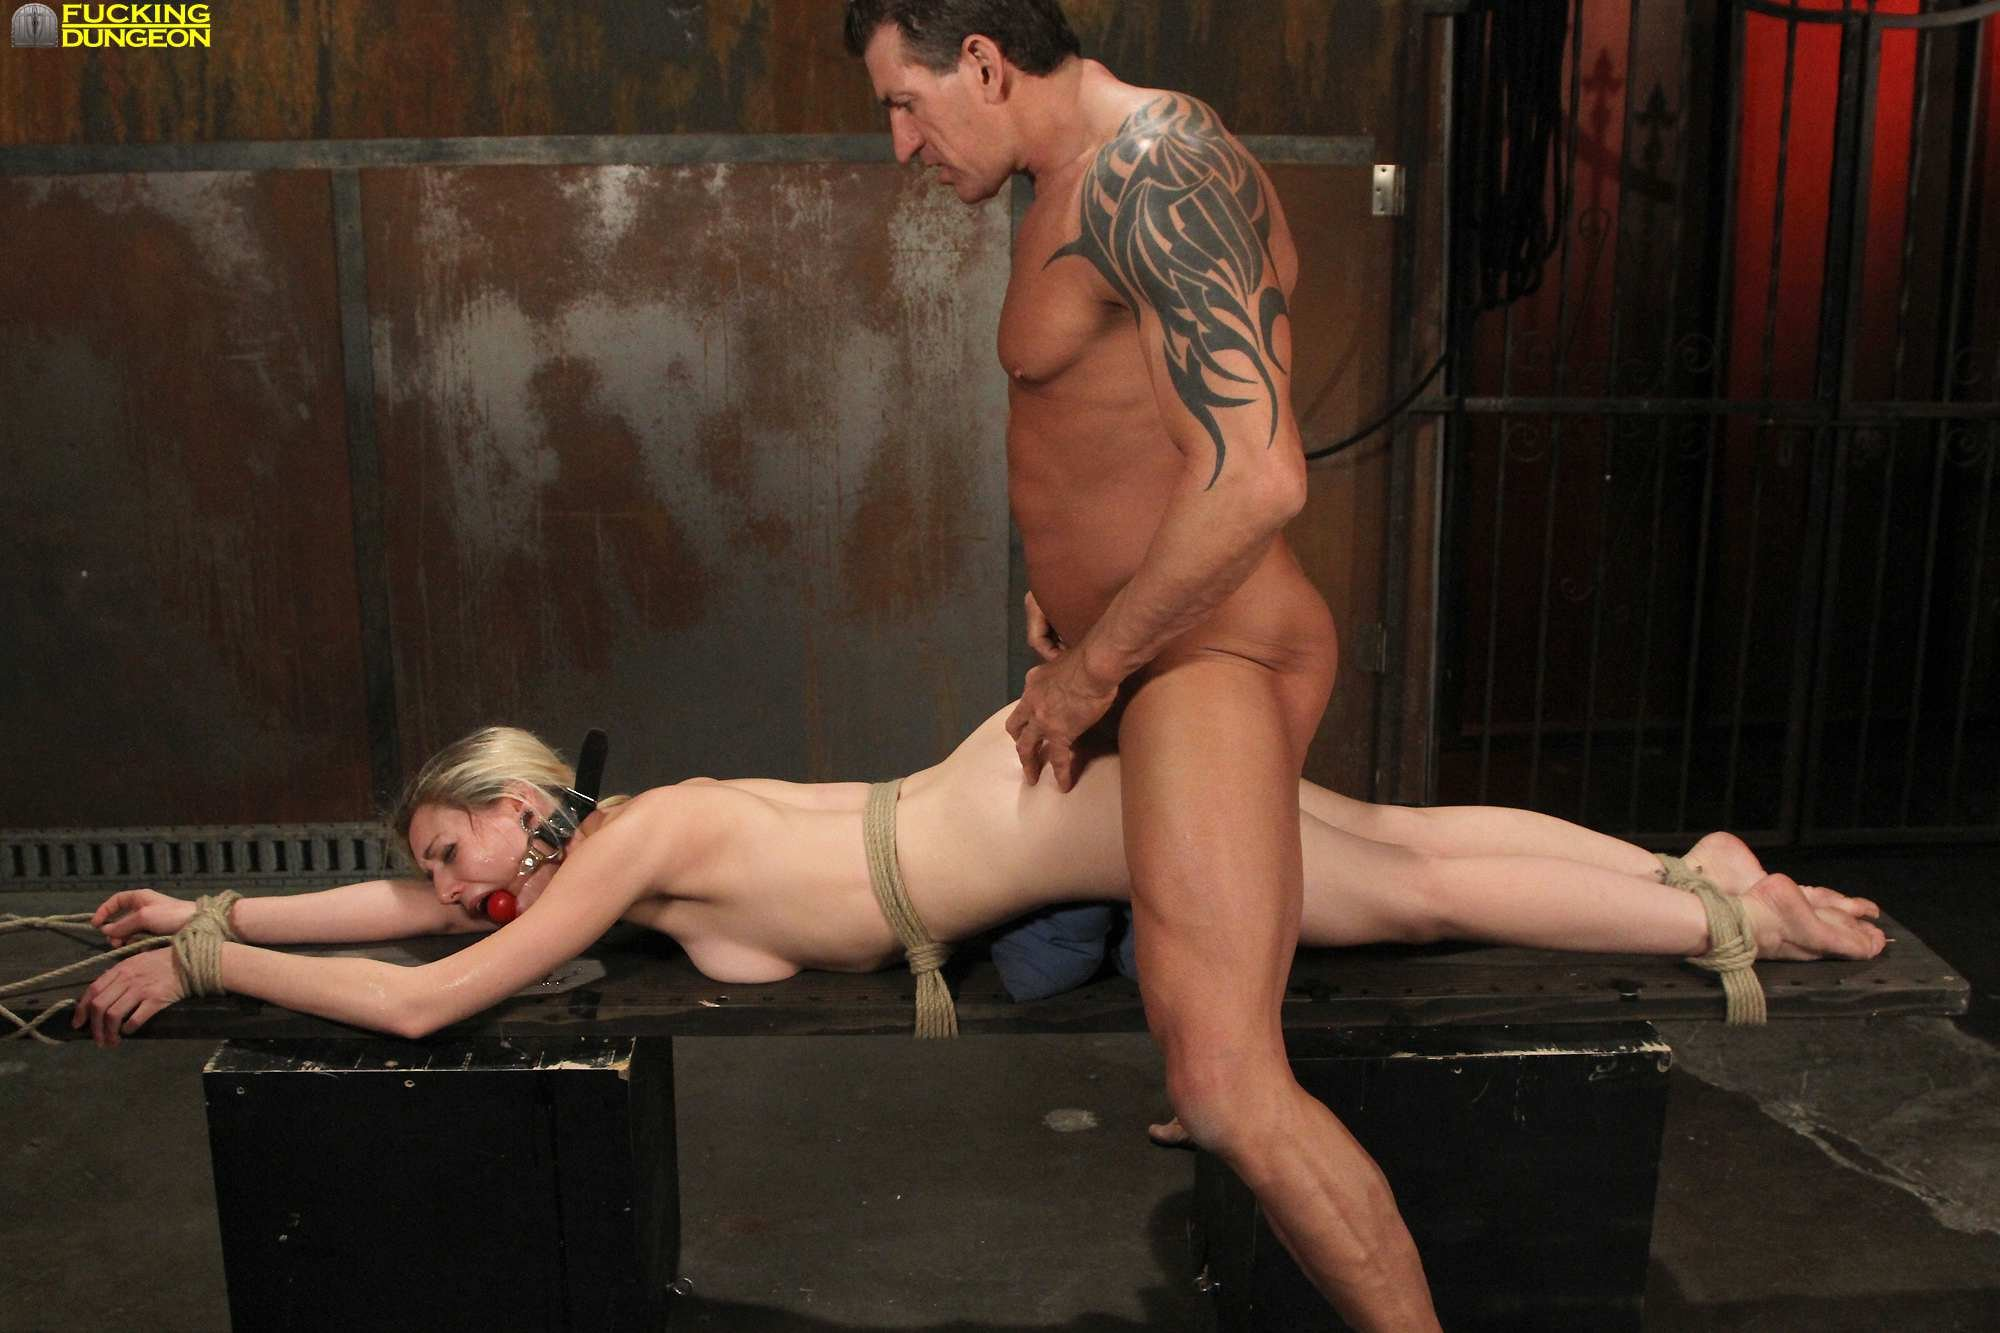 Clit submission dungeon, indan brothor sistor nud image